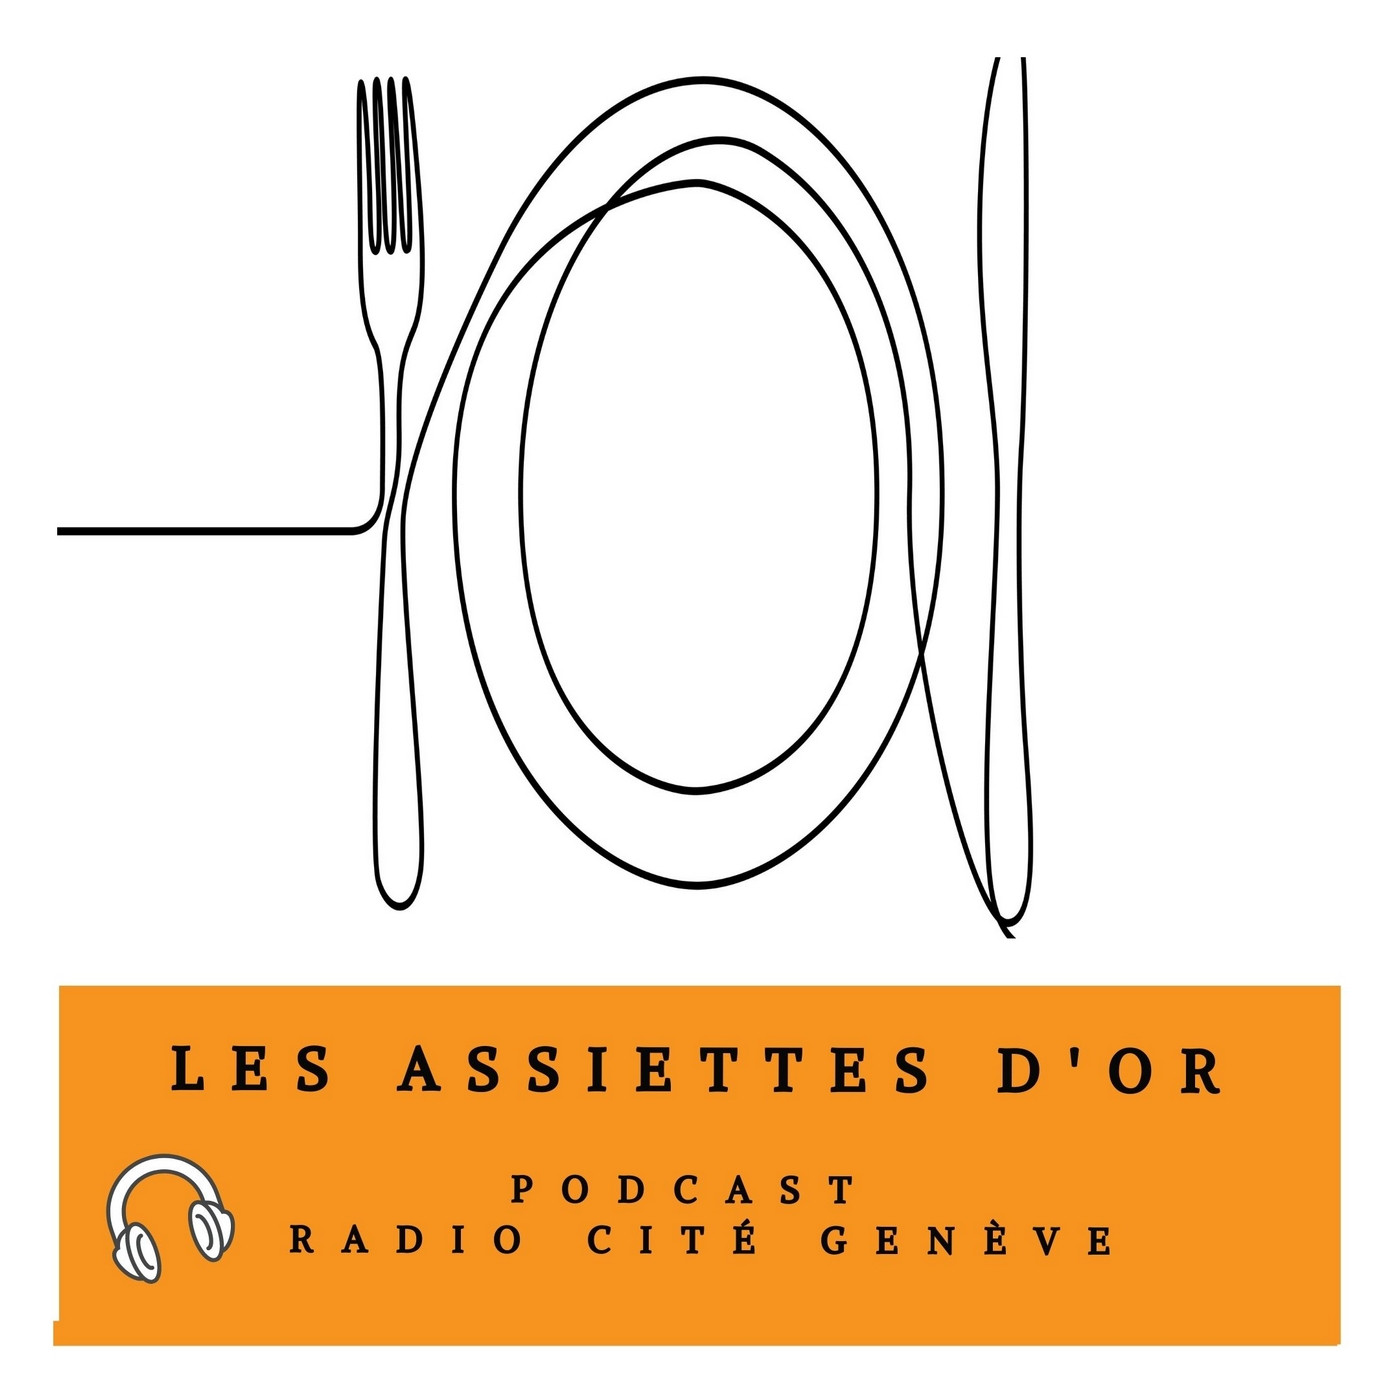 Les assiettes d'or - 23/09/2020